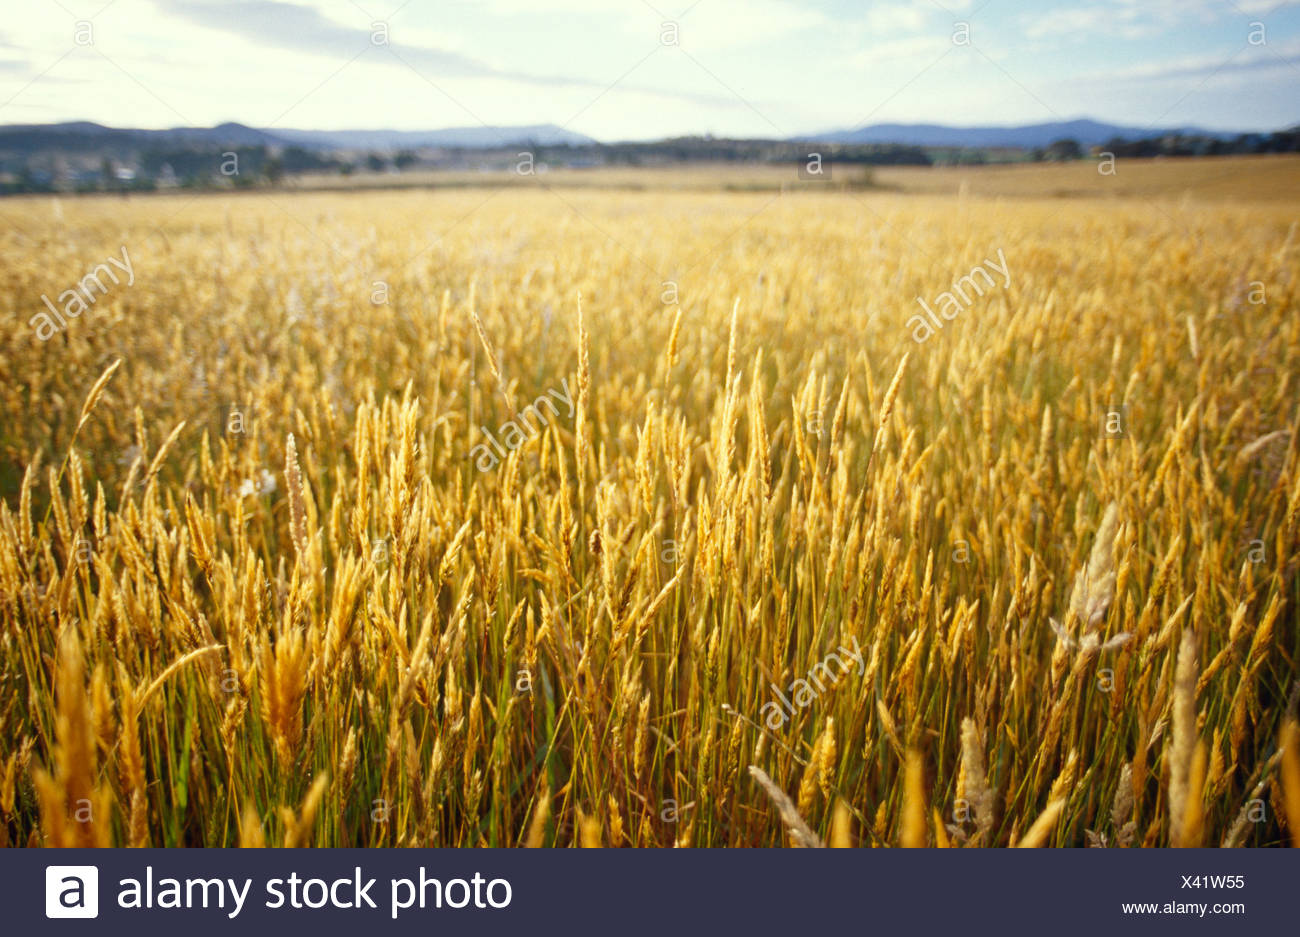 A golden field crop of seeding grasses catches the morning light. - Stock Image